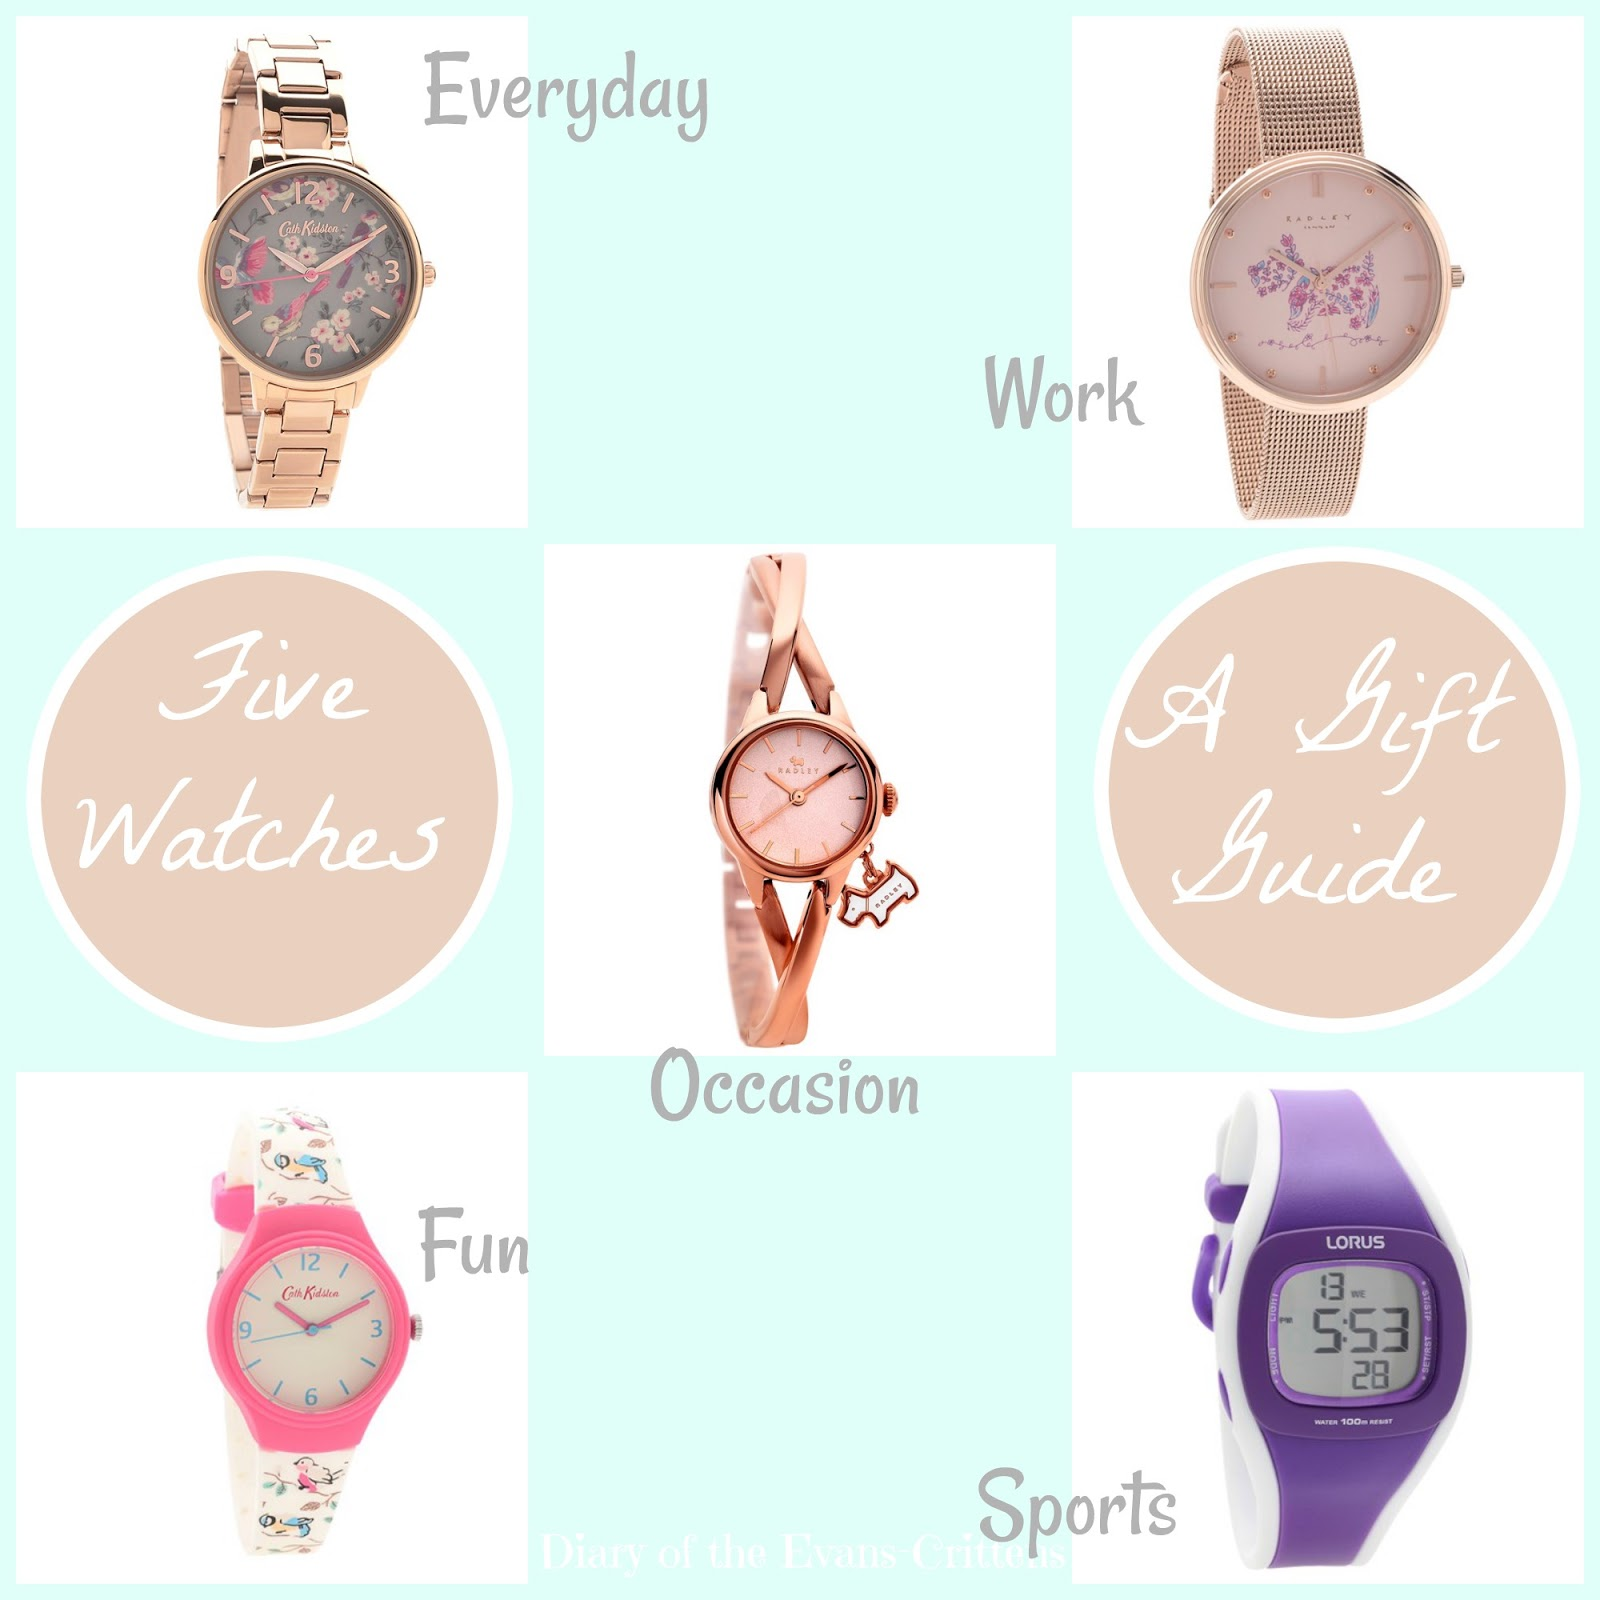 , Style:  Five Ladies Watches- a Gift Guide